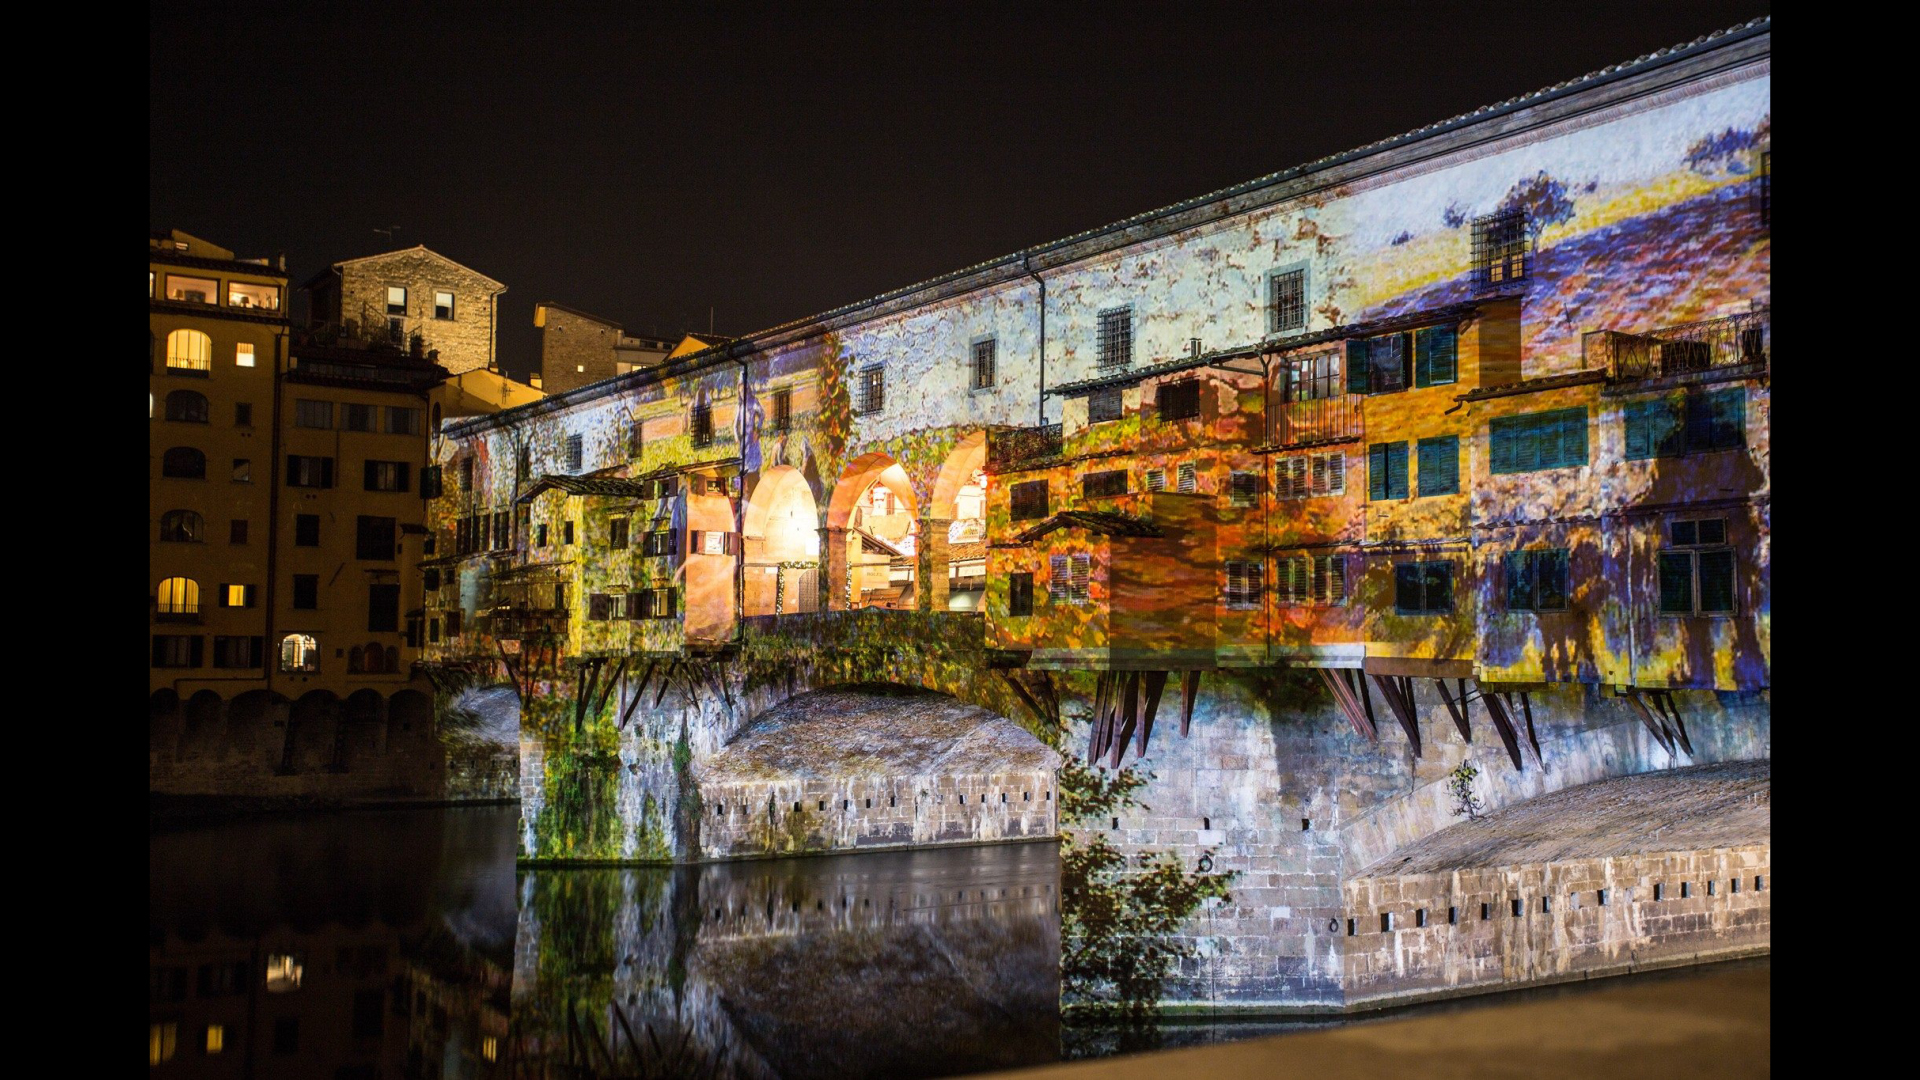 stefano-fake-the-fake-factory-videoproiezioni-flight-2015-ponte-vecchio-firenze_00120